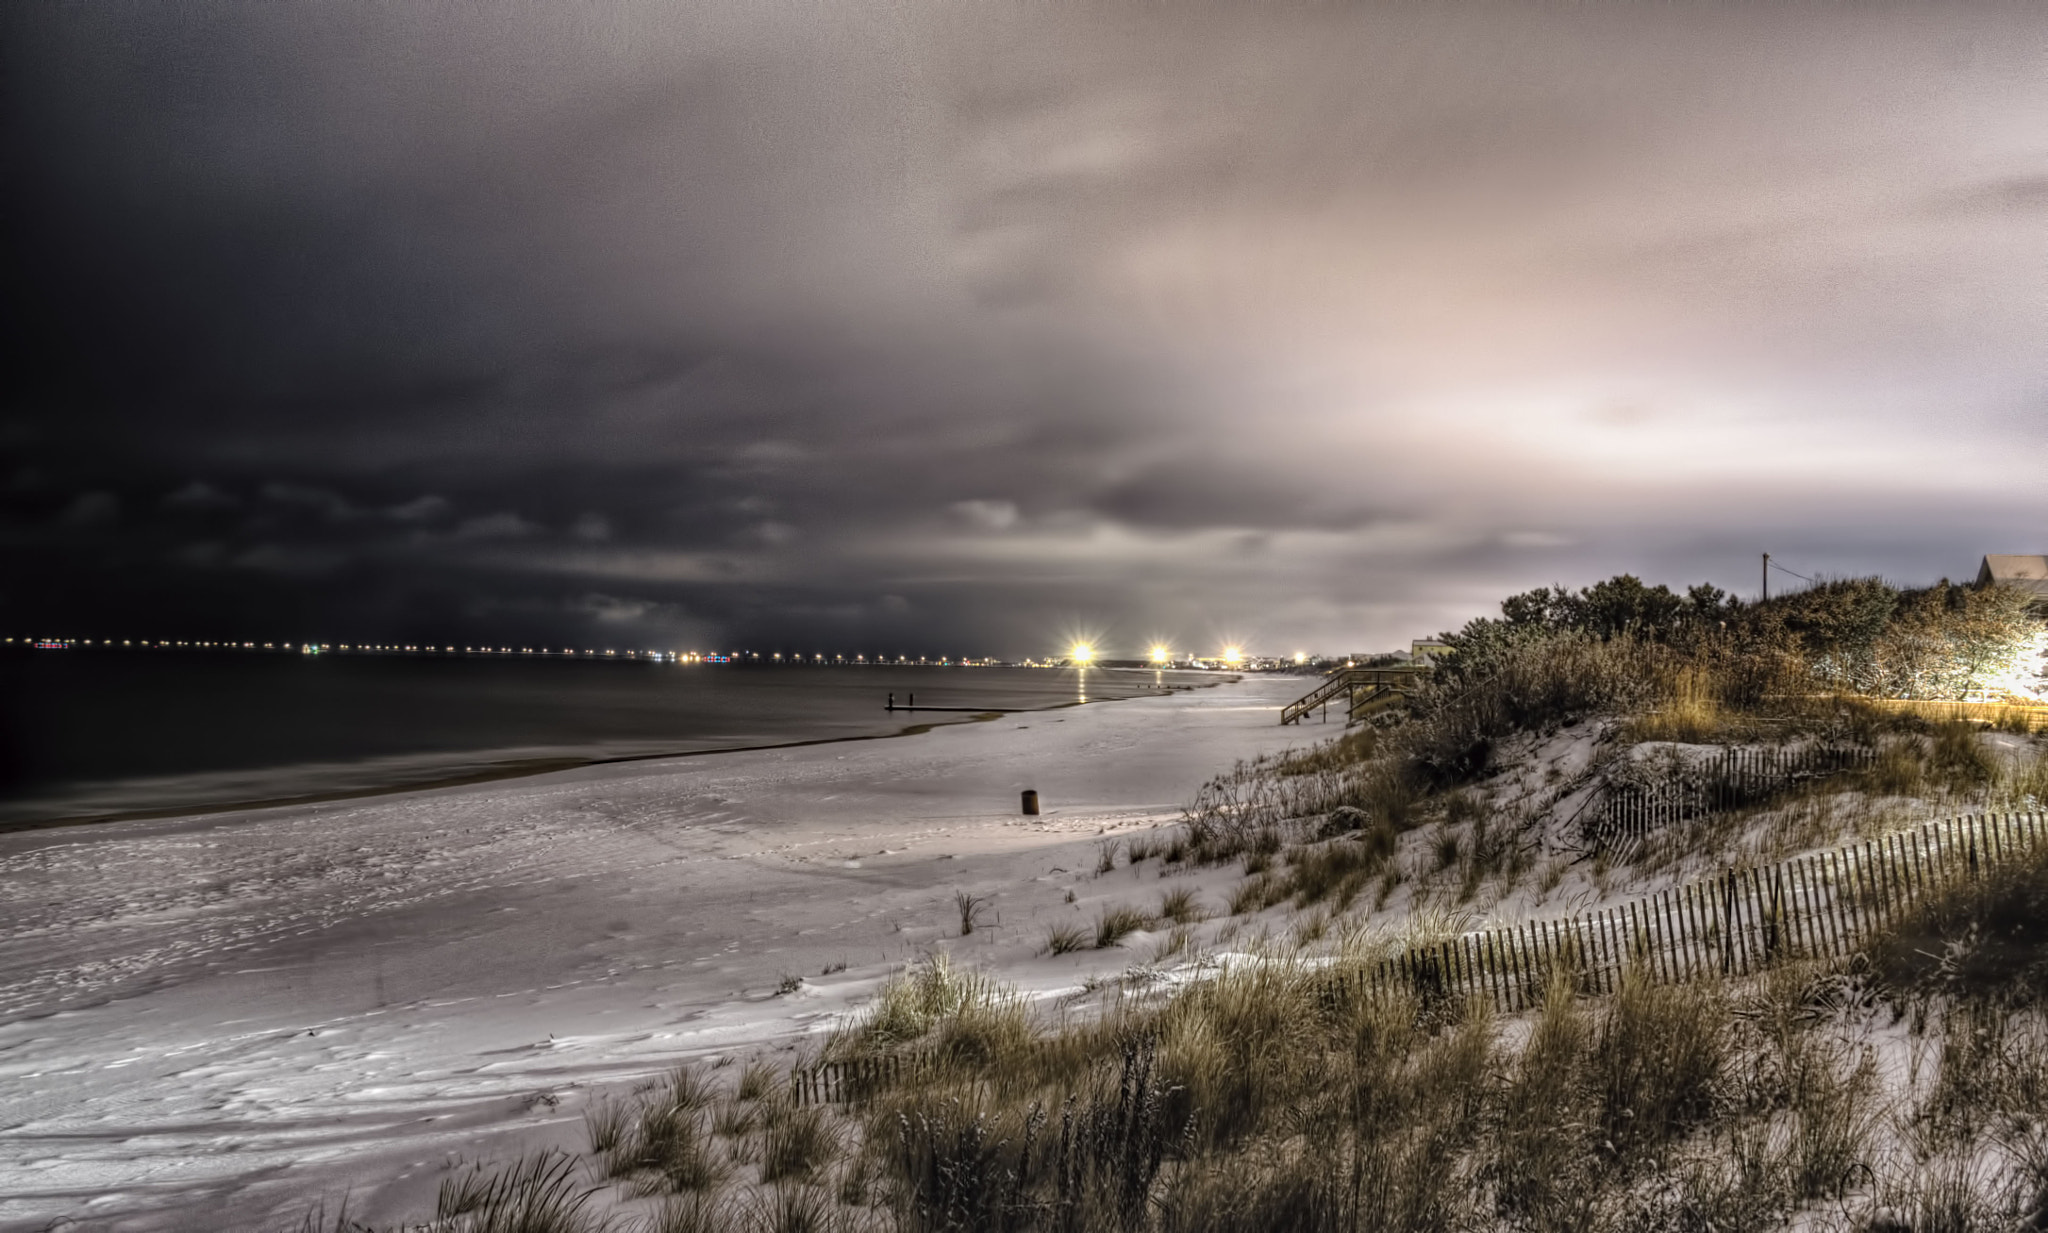 Photograph A Little Snow may Fall by James Gramm on 500px